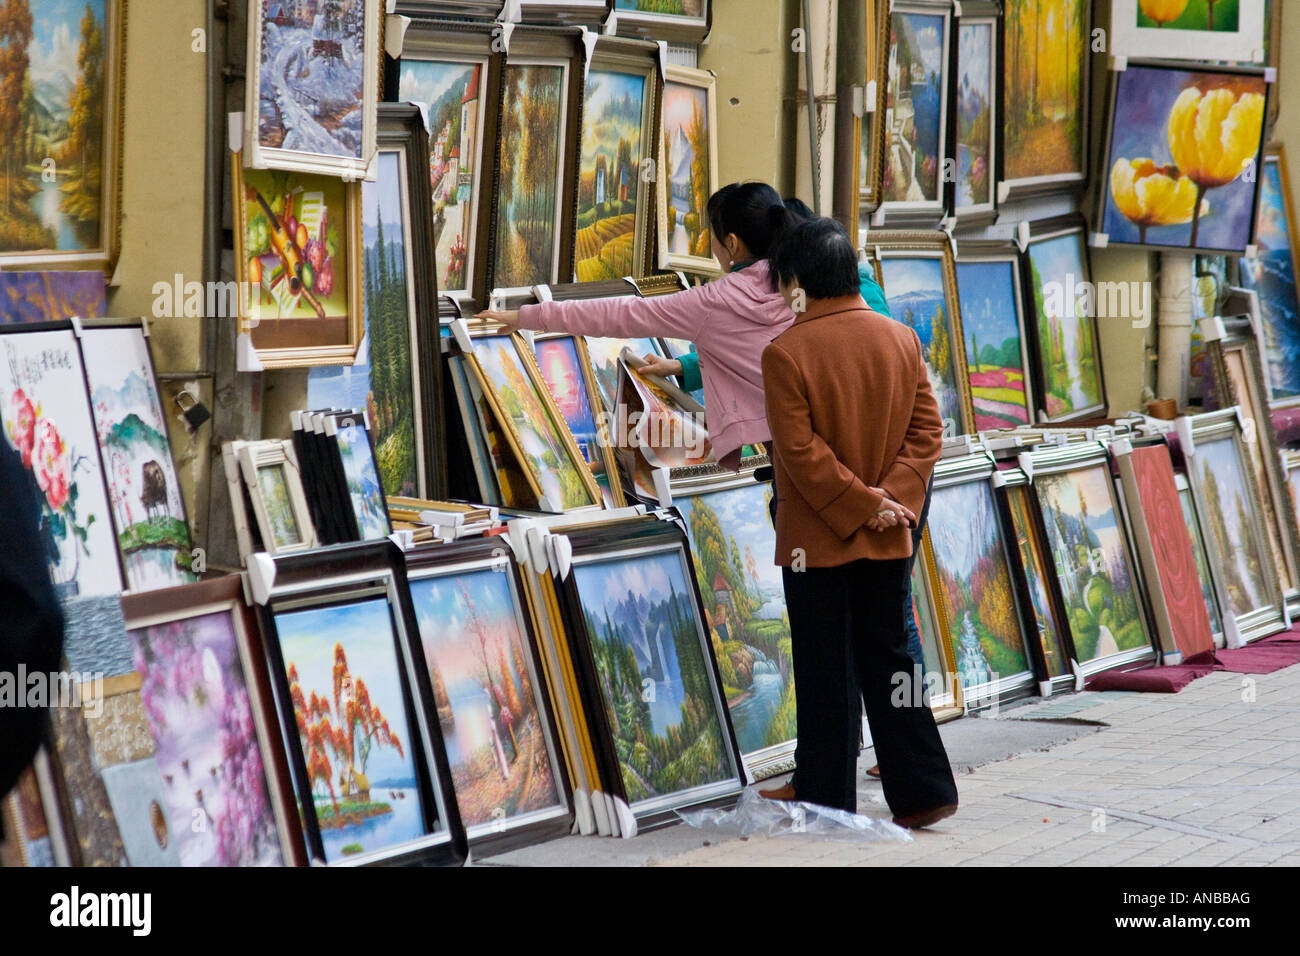 Oil Paintings at an Art Gallery Da Fen Painting Village Shenzhen China Stock Photo